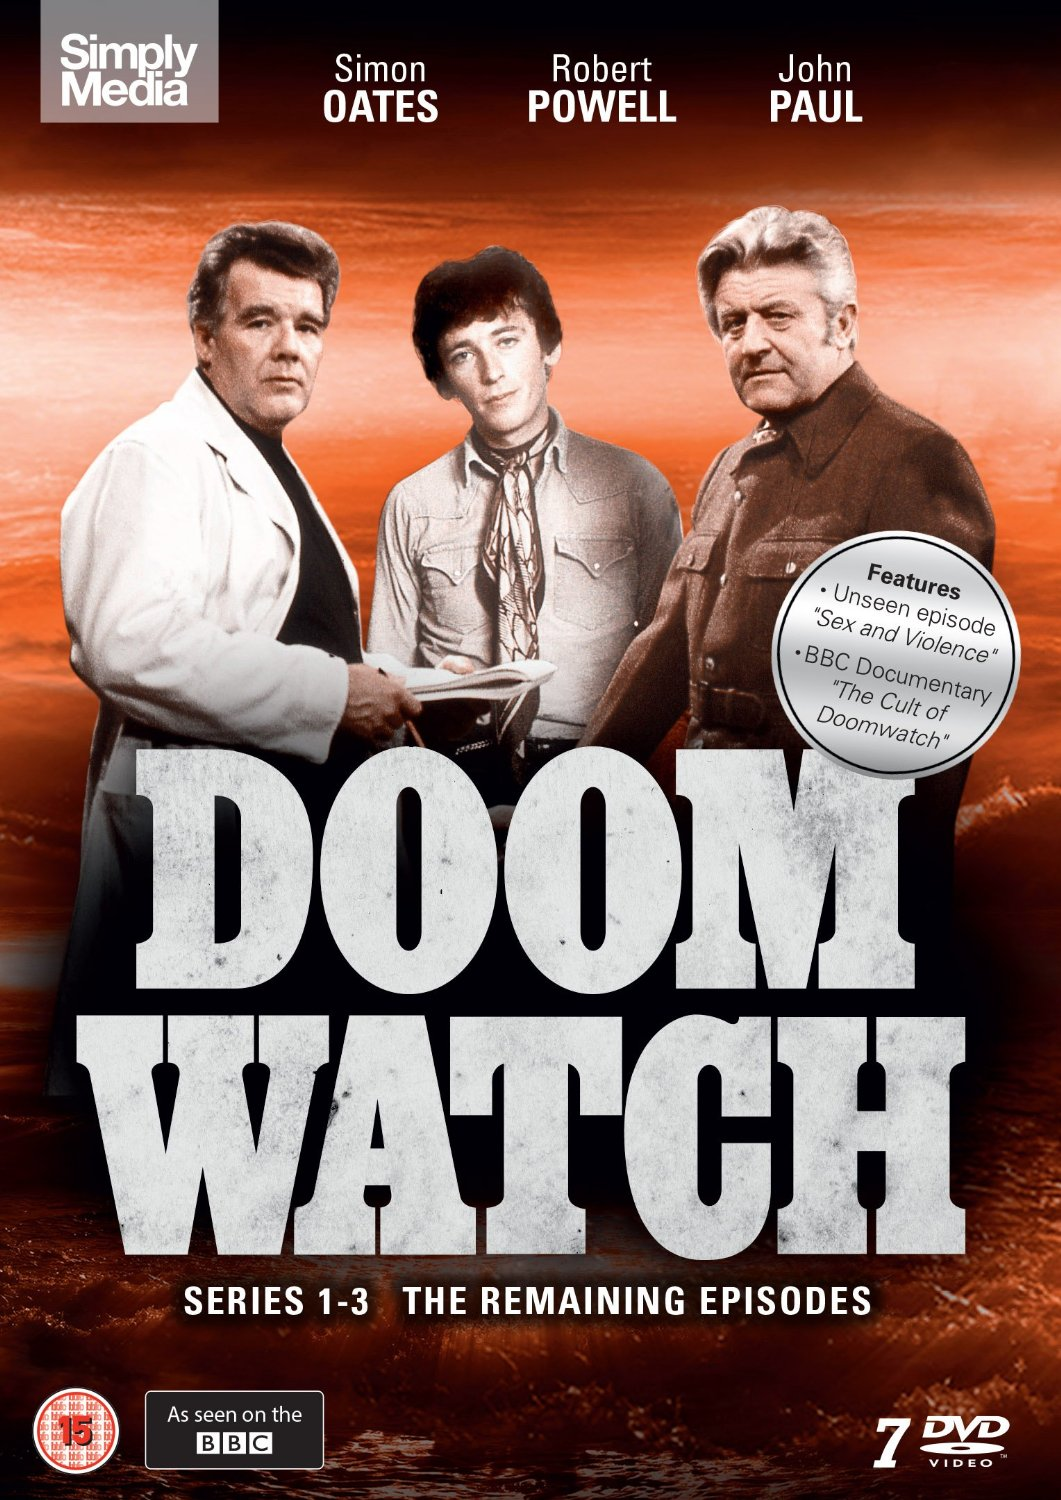 Doomwatch - DVD release - new cover design